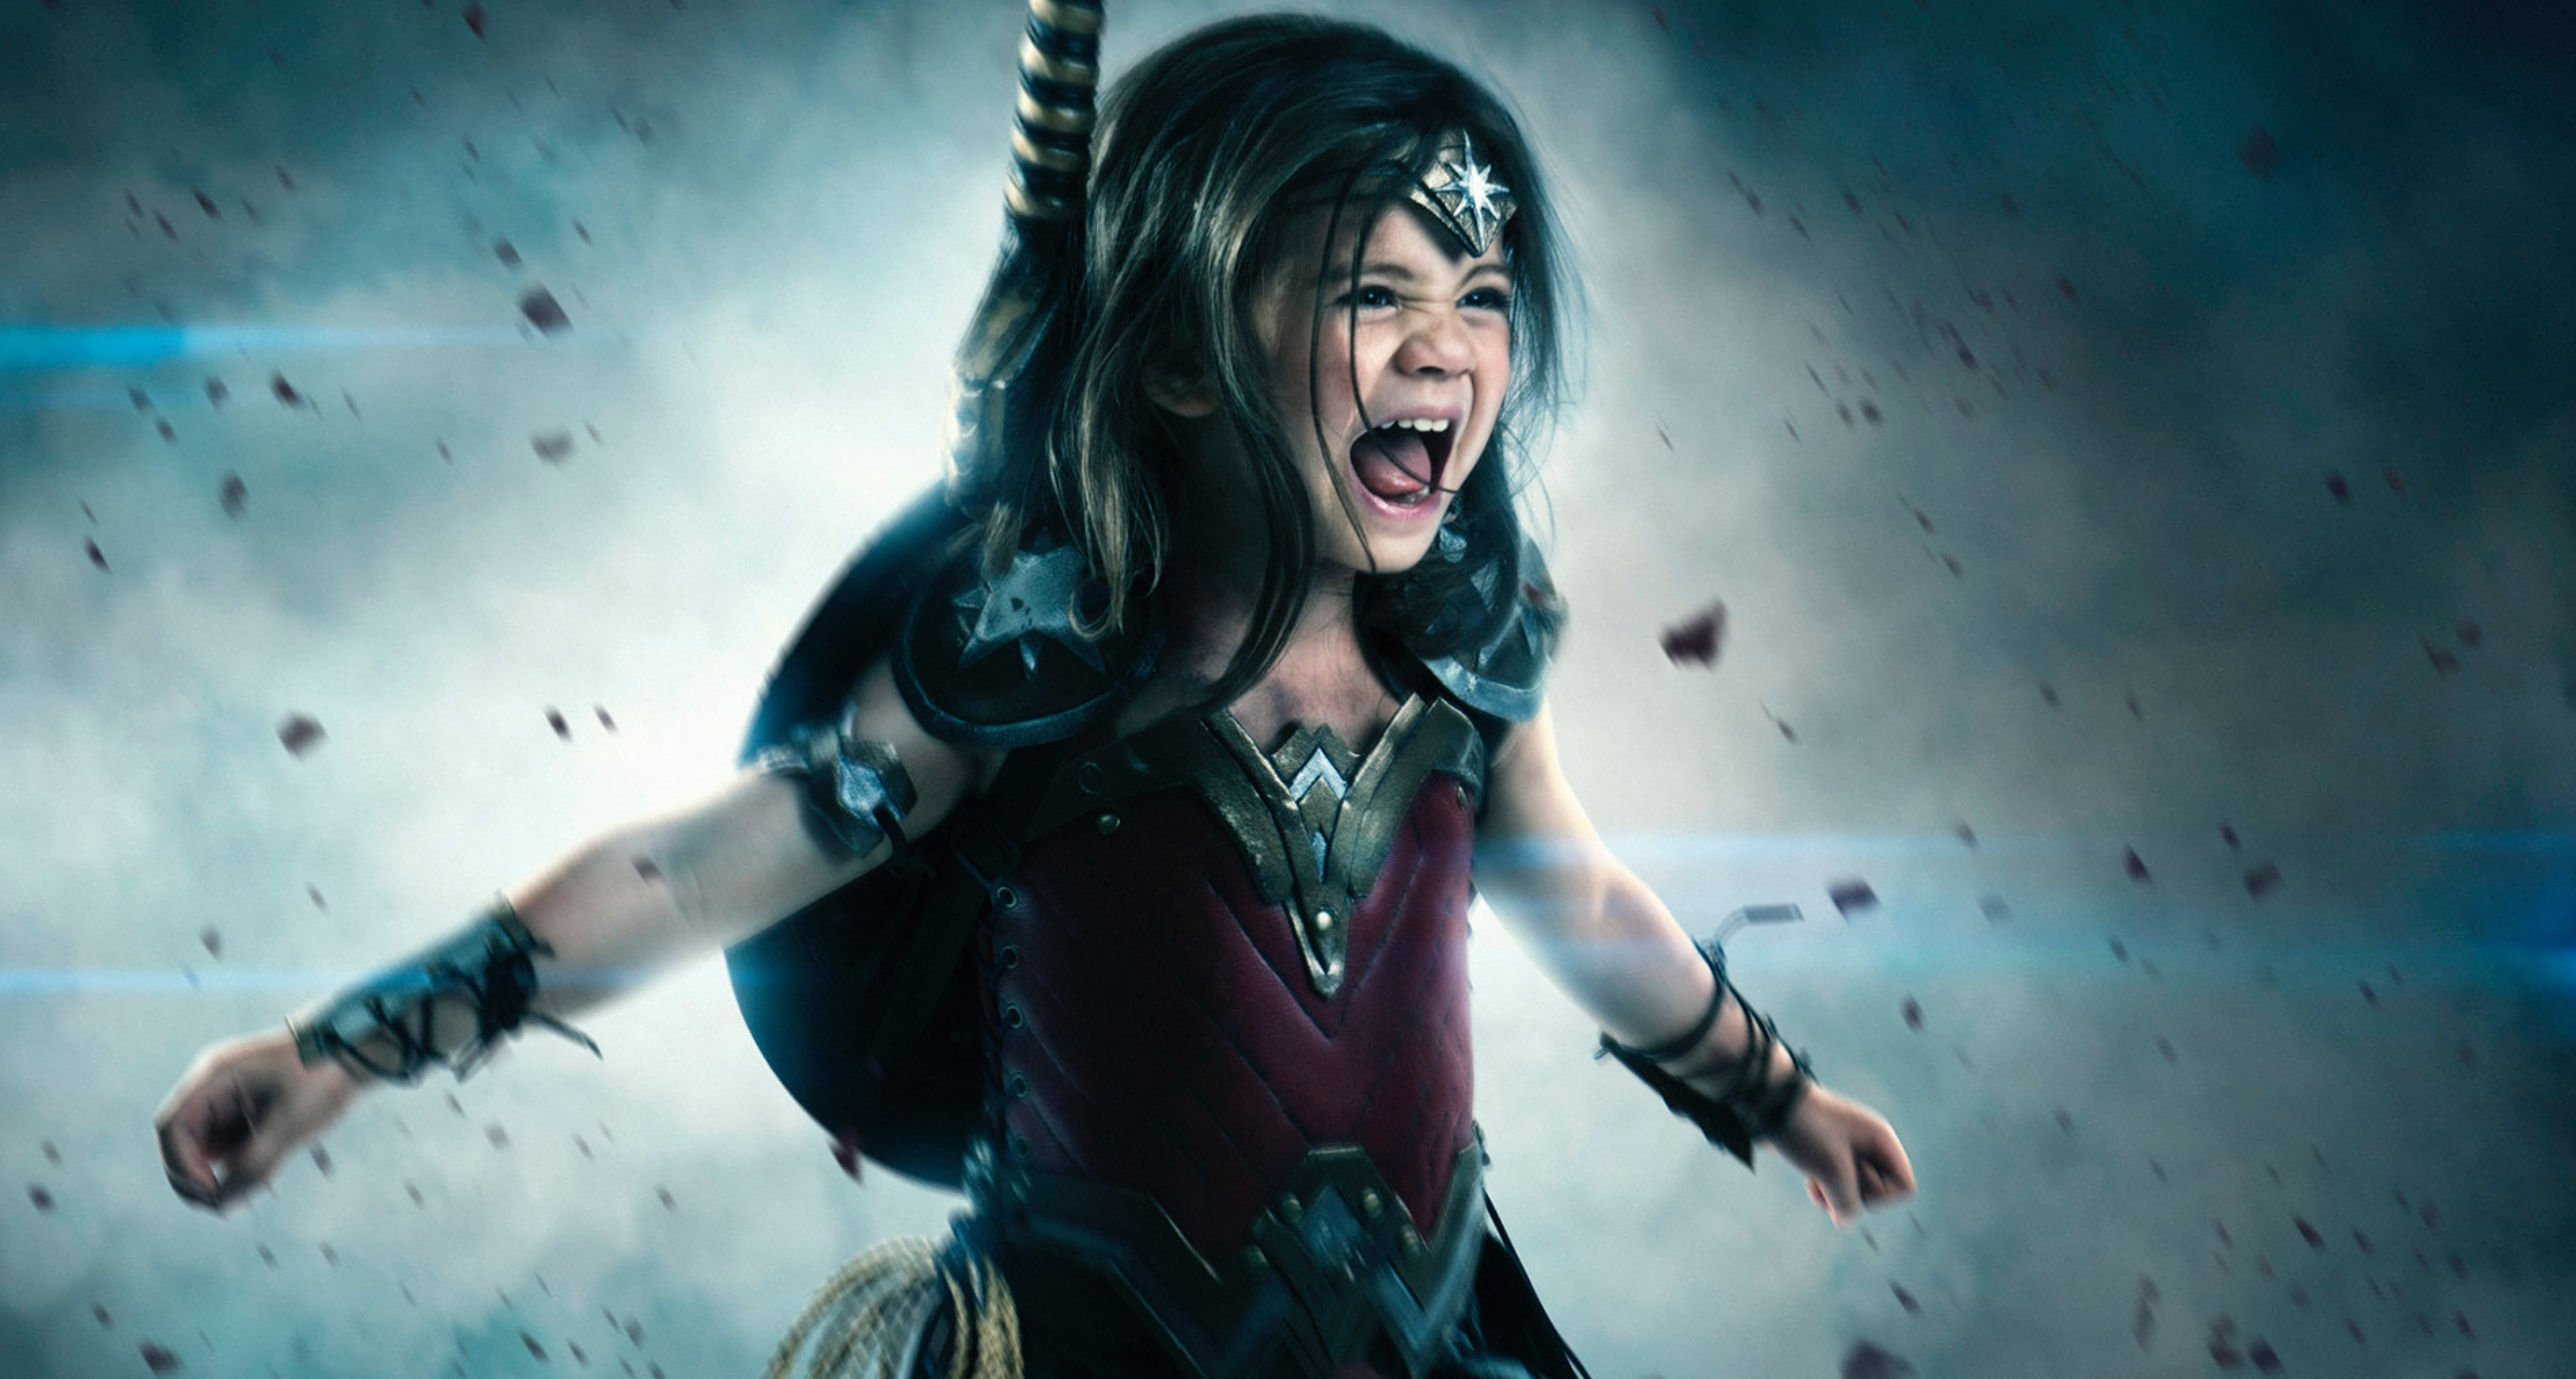 Wonder woman - Images courtesy of Josh Rossi